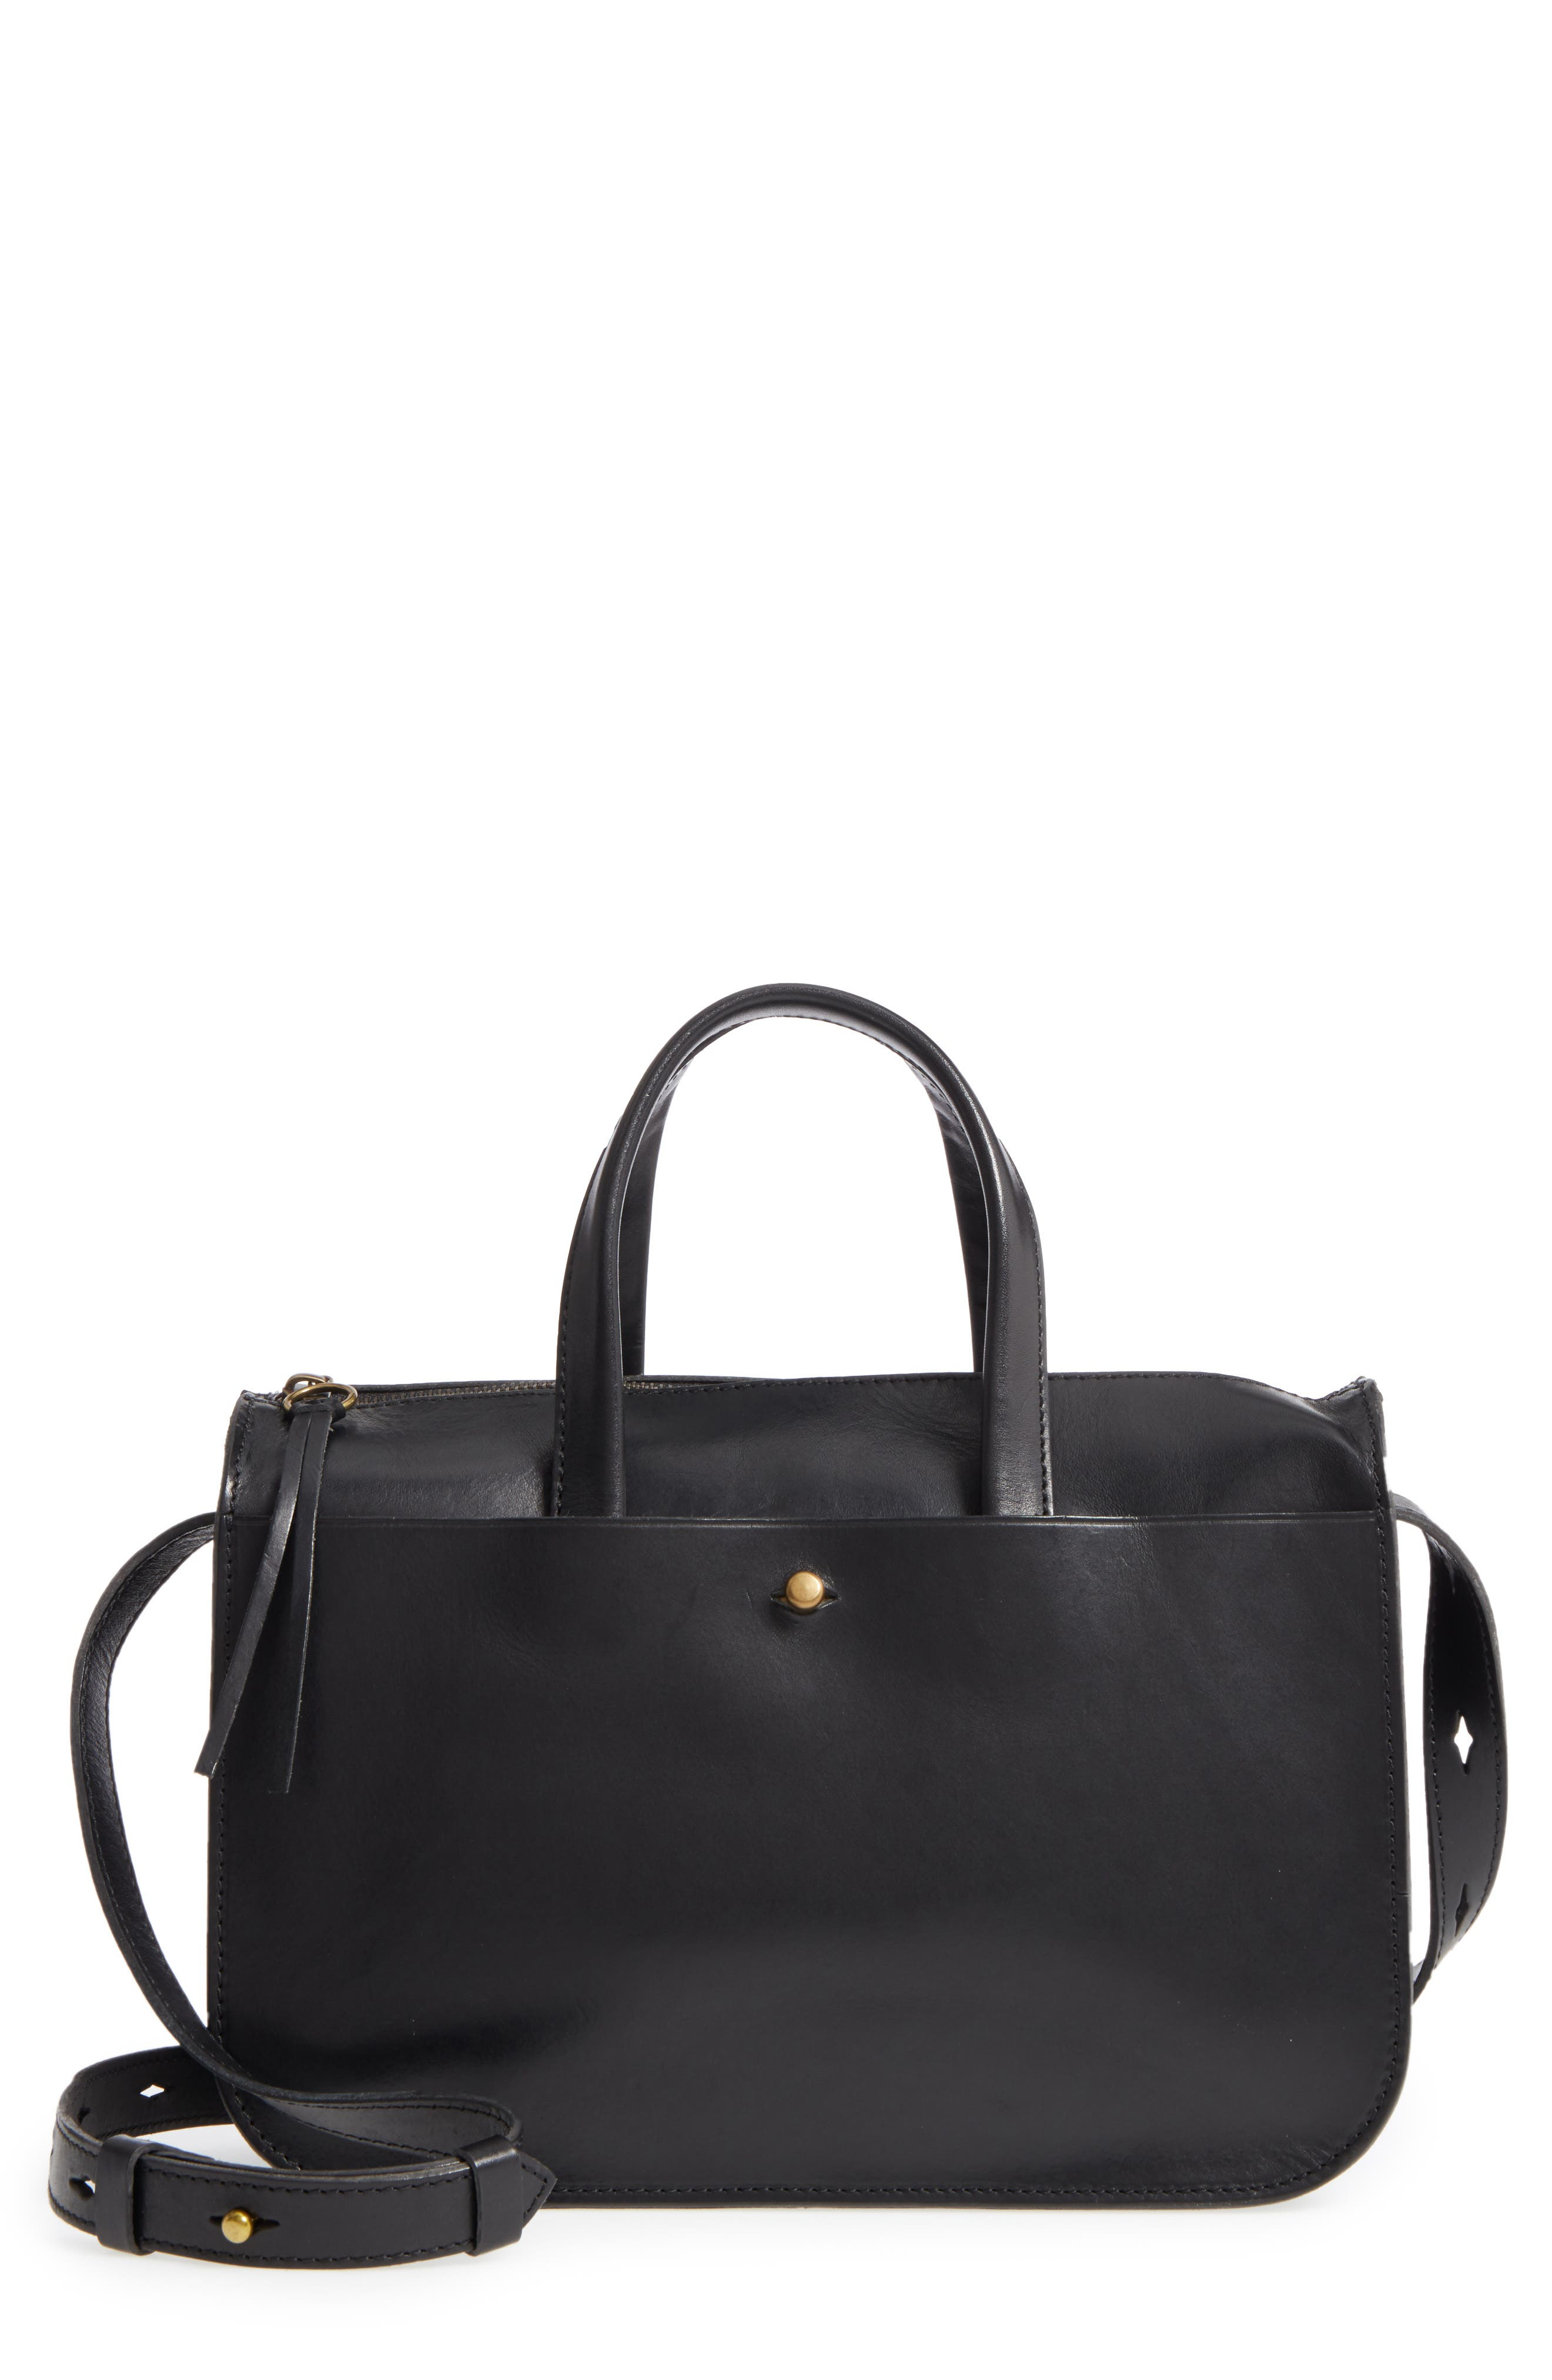 Montreal Leather Satchel,                             Main thumbnail 1, color,                             001